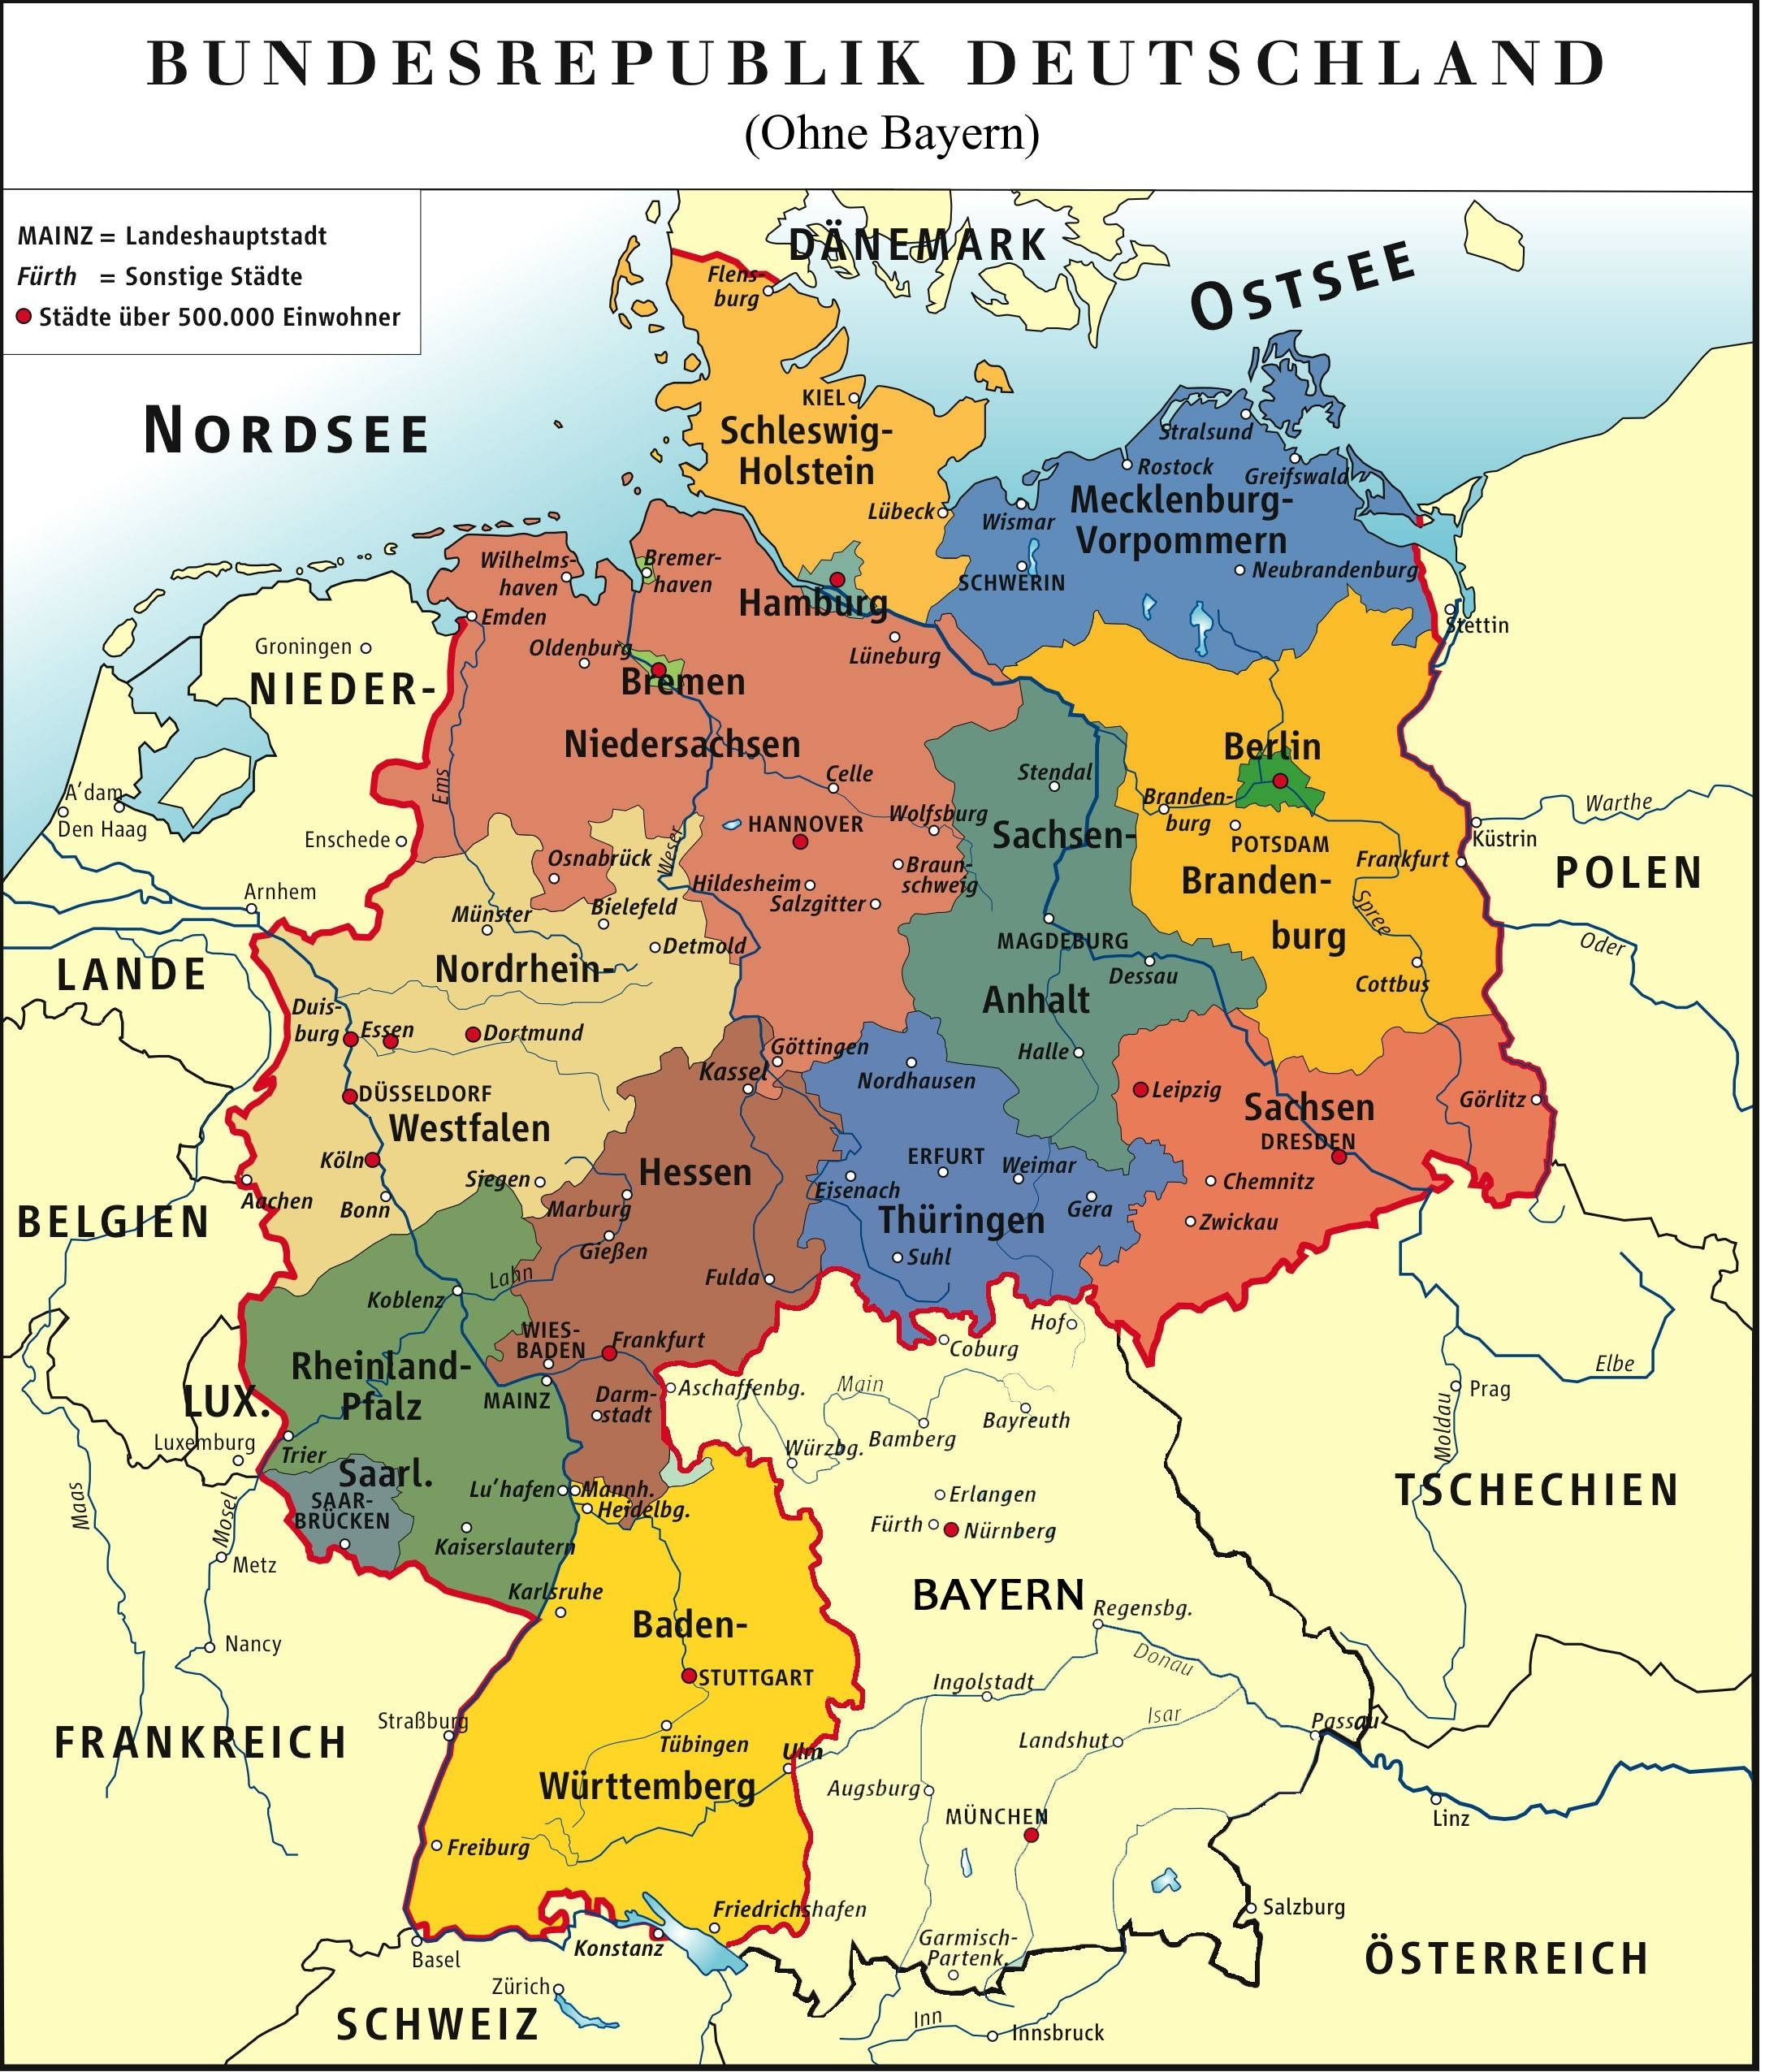 I Made A Map Of Germany Without The State Bavaria Because Their for Friedrichshafen Germany Map